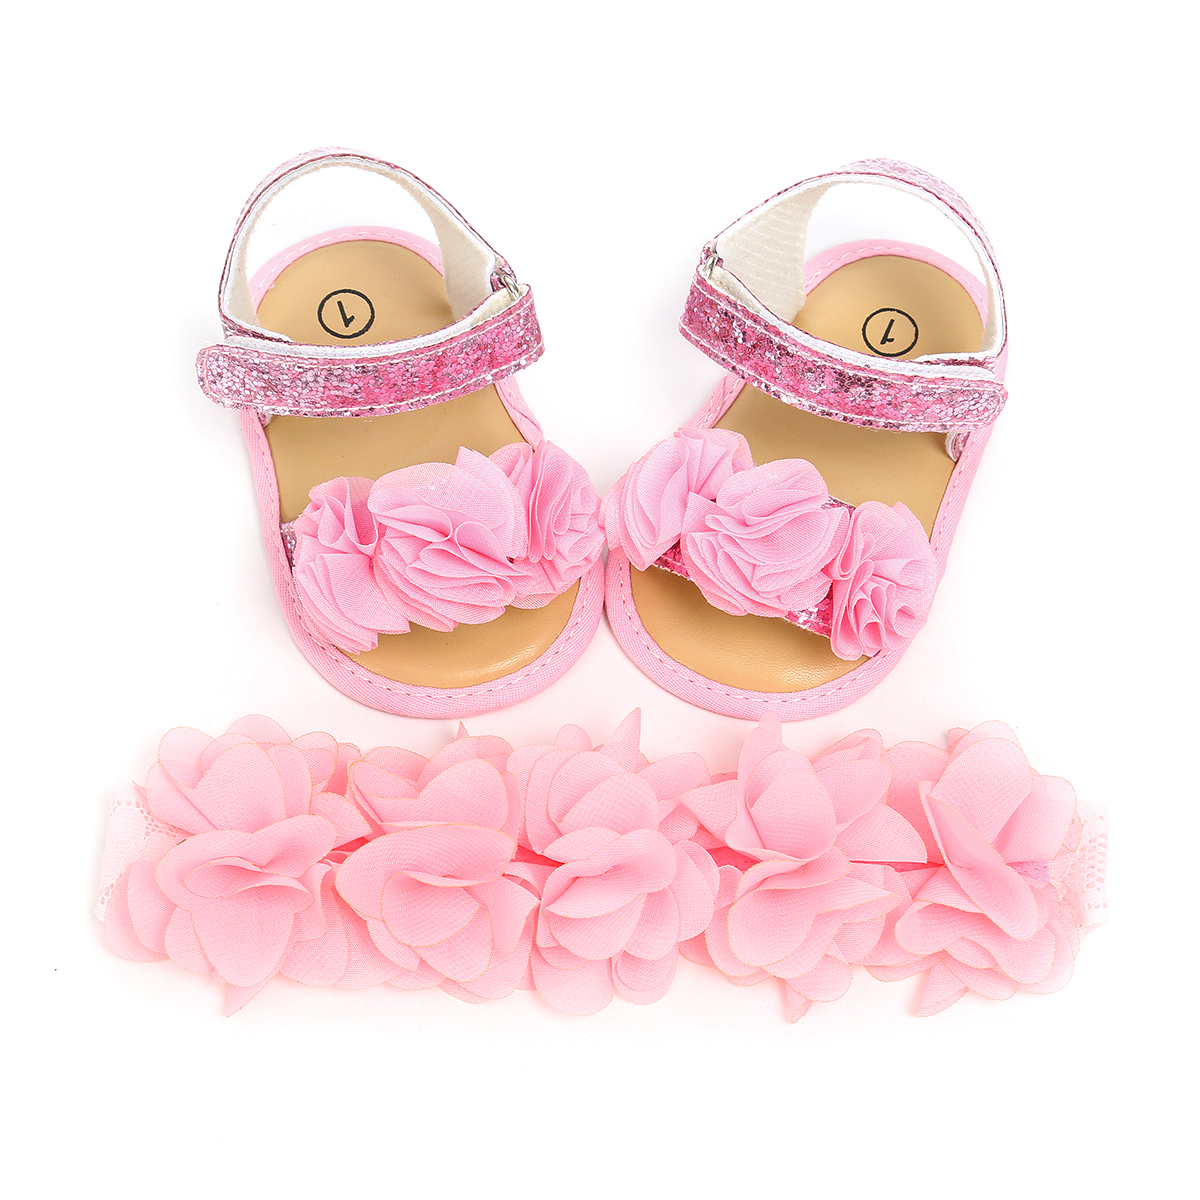 Infant Newborn Baby Girl Sandals Cute Flower Appliques Girl Sandal Clogs Shoes Zapatos Bebe With Headband